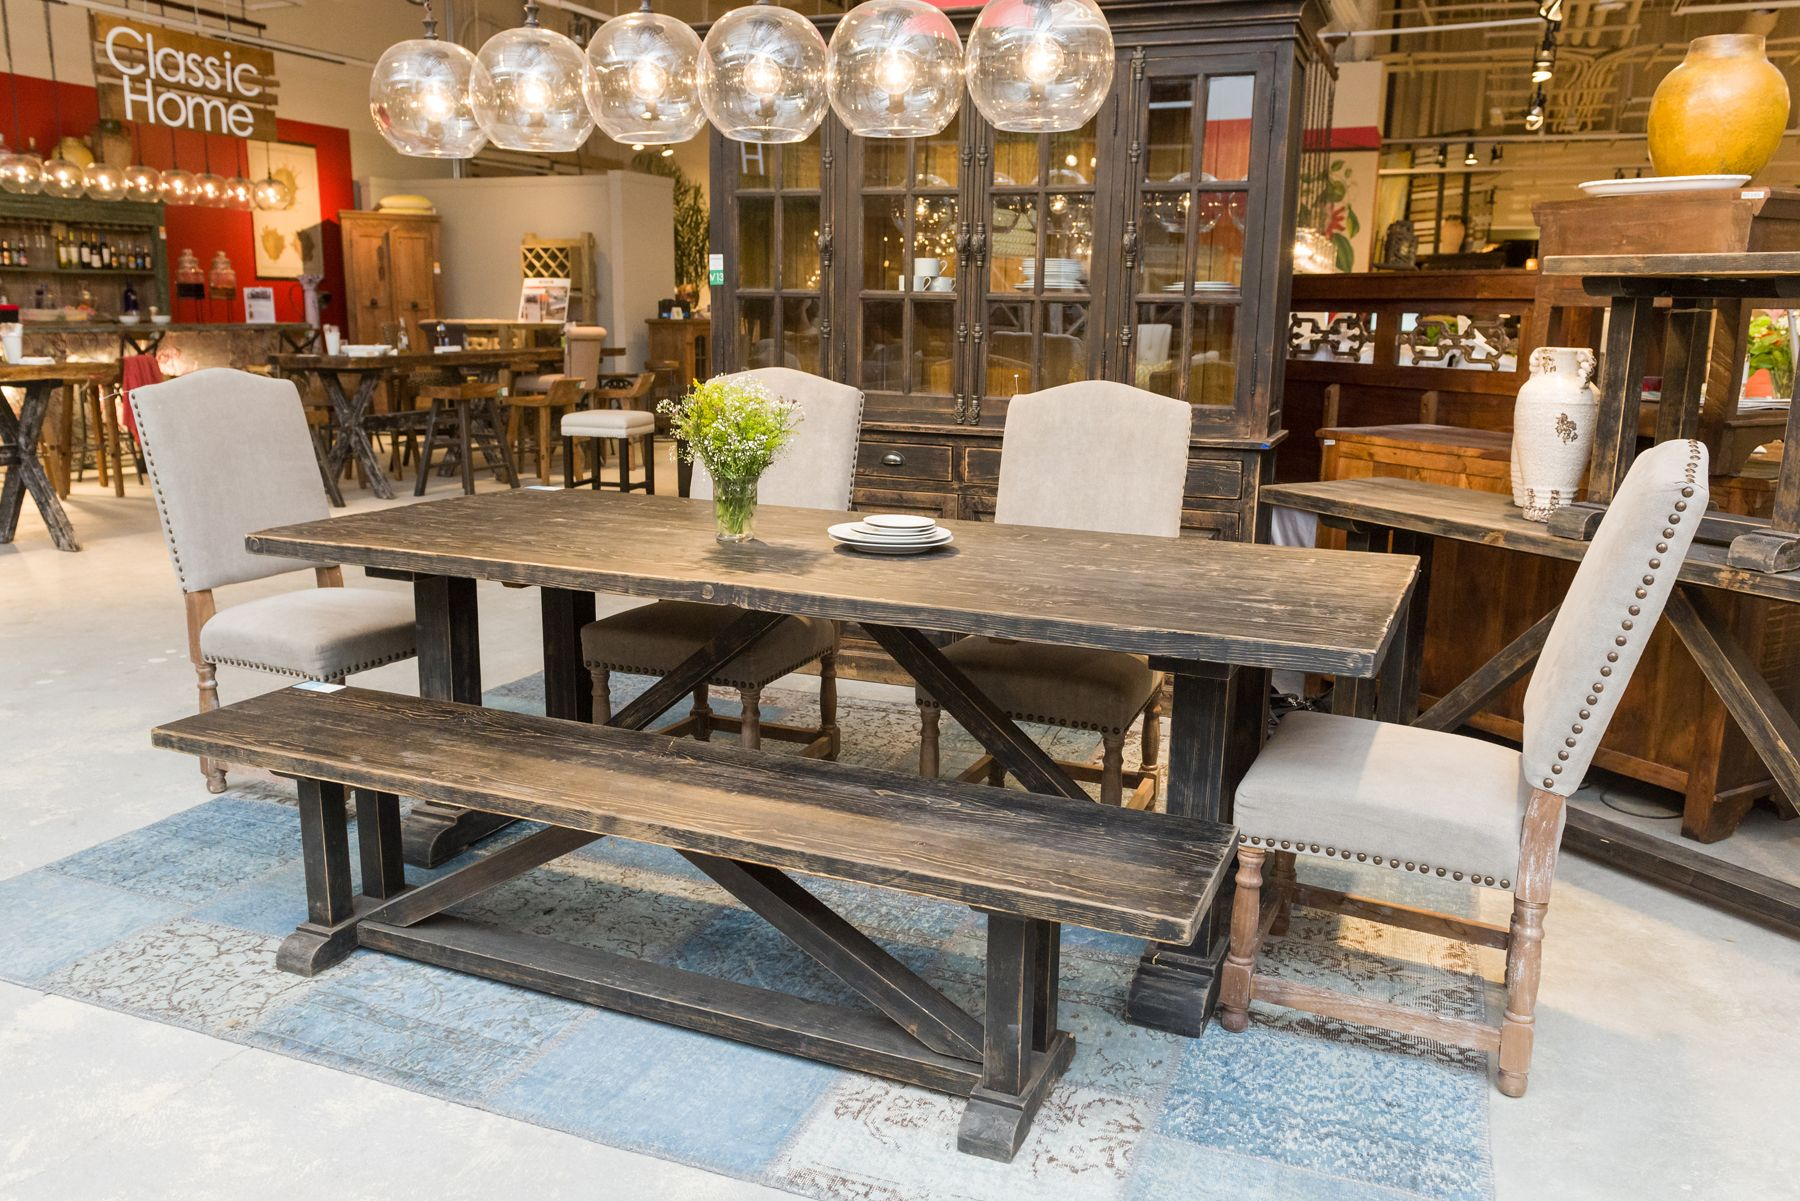 Hyland Dining Table From Classic Home As Shown Las Vegas Market